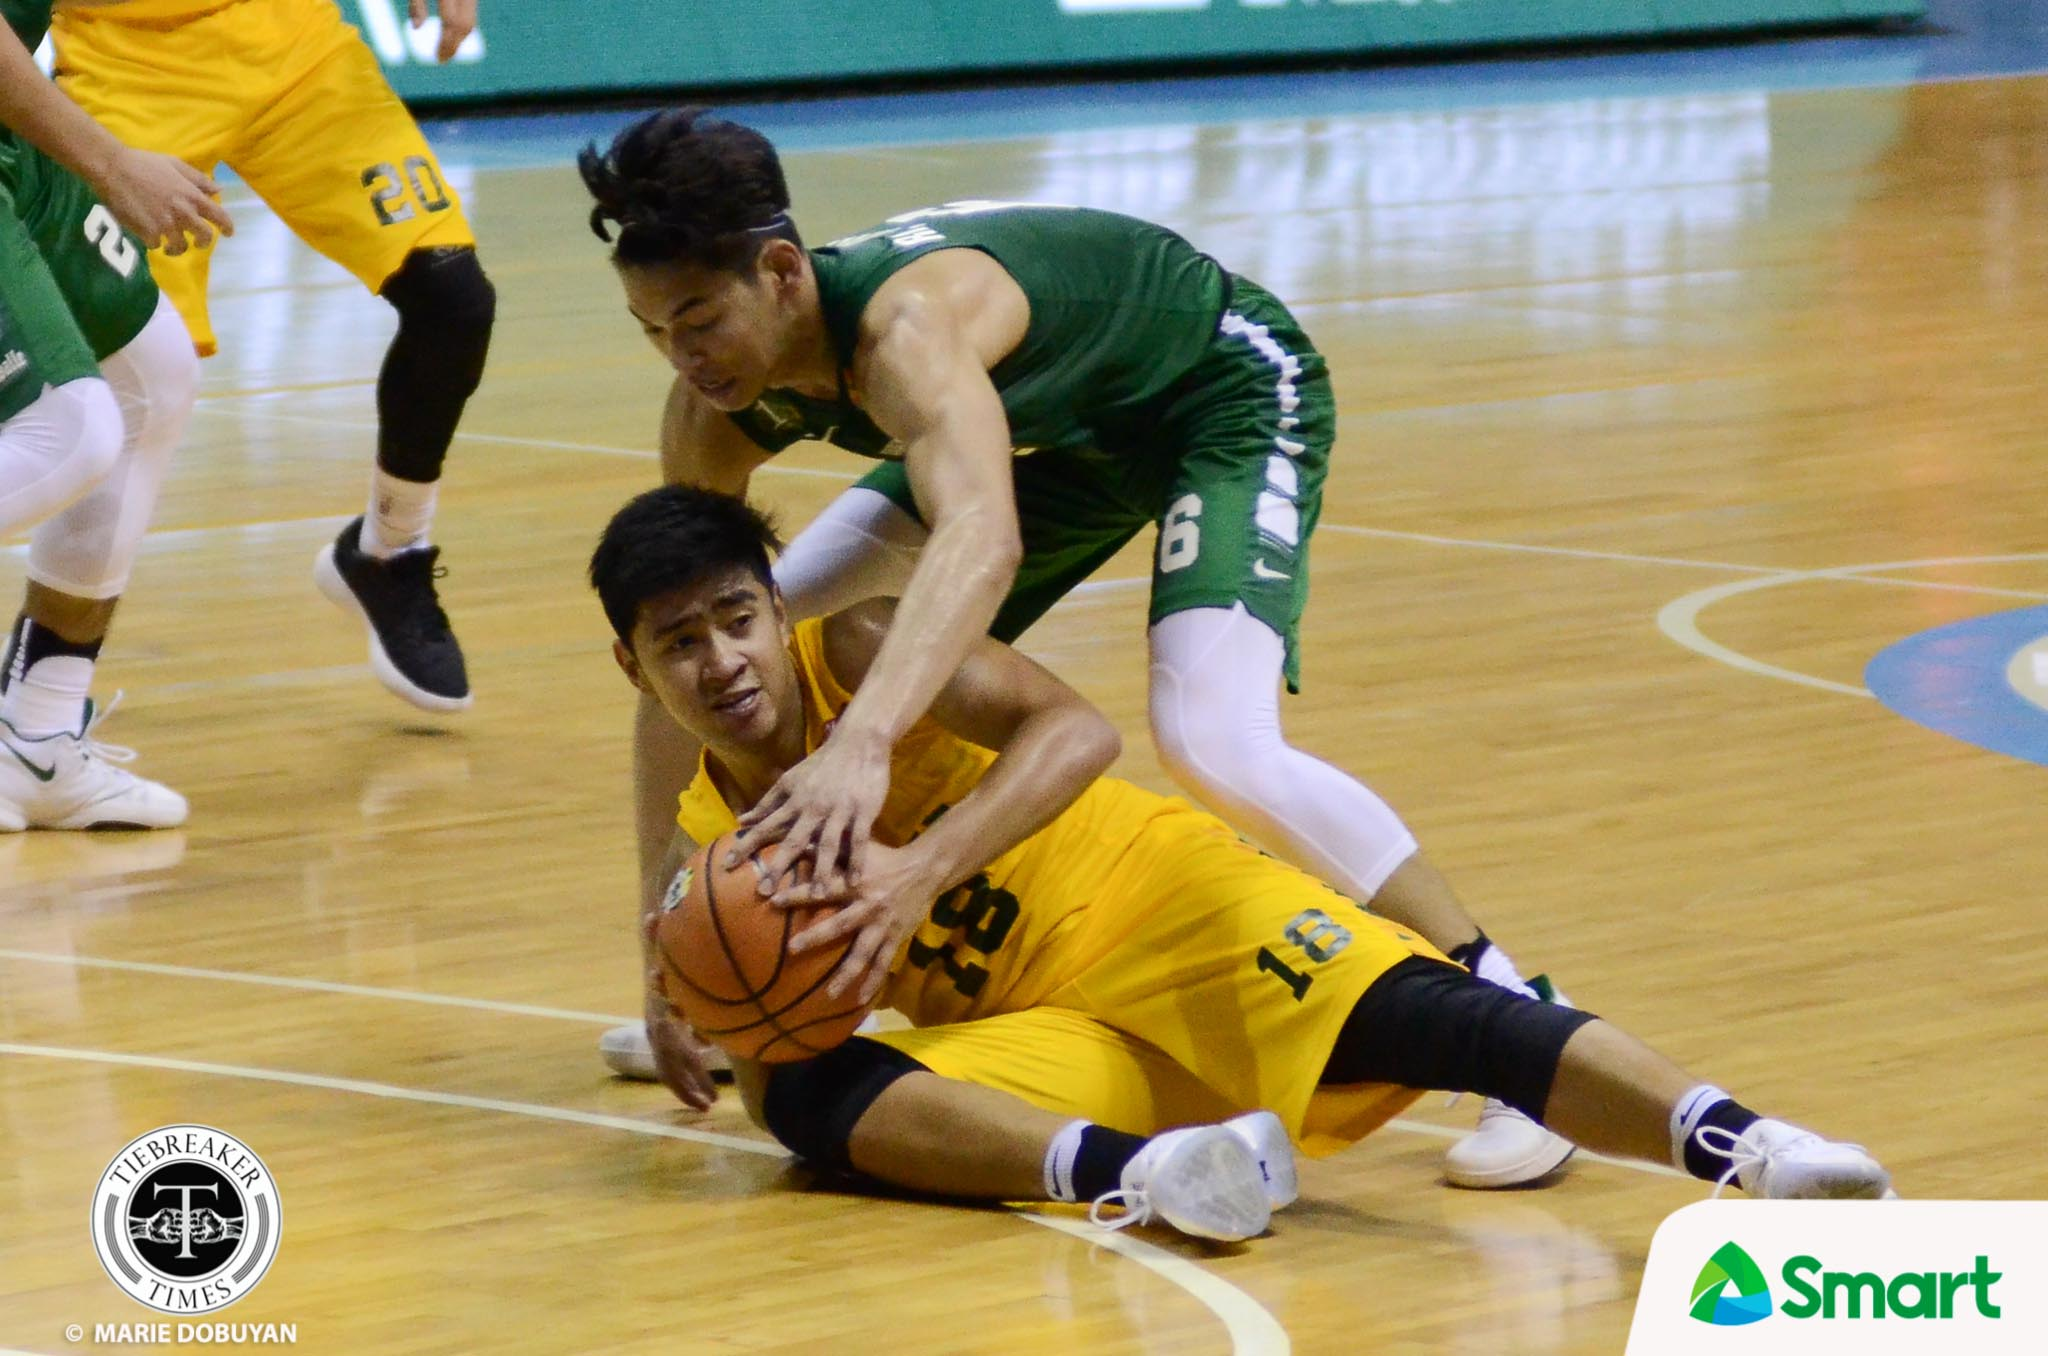 Philippine Sports News - Tiebreaker Times Hubert Cani cites fatigue for late-game turnovers against La Salle Basketball FEU News UAAP  UAAP Season 80 Men's Basketball UAAP Season 80 Hubert Cani FEU Men's Basketball